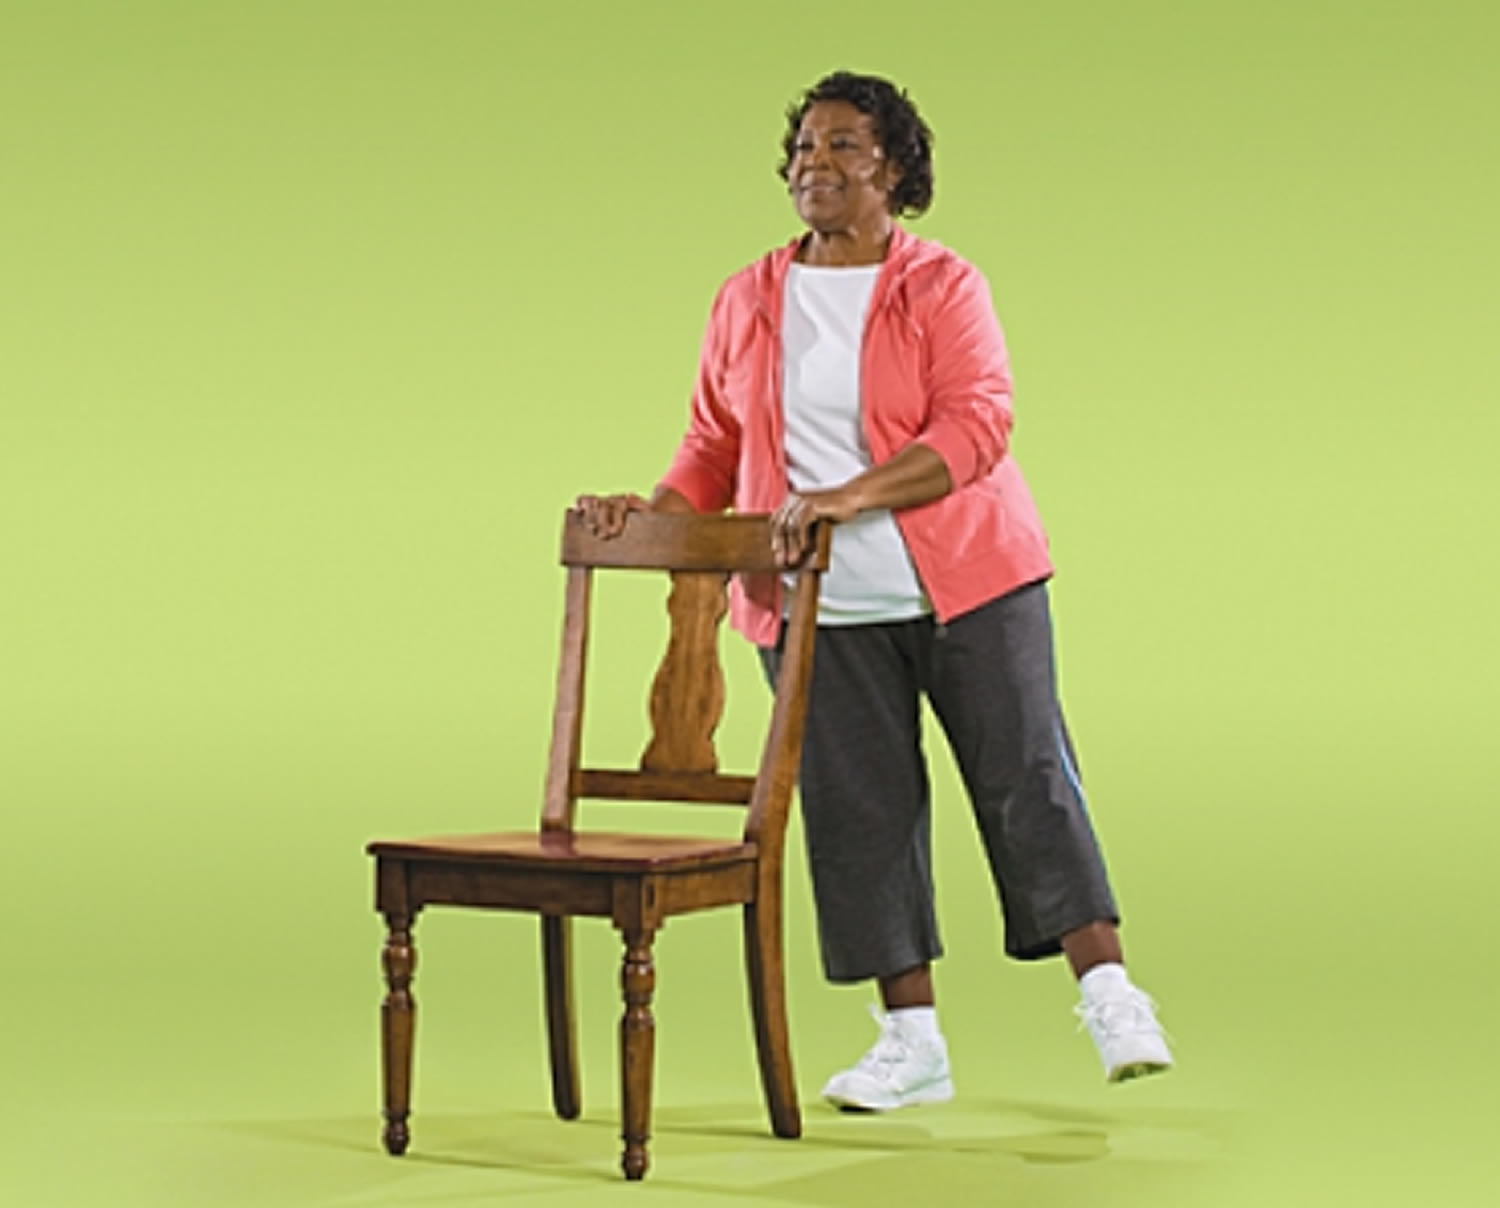 Chair Lifts For Seniors Balance Problems Gait Problems Poor Balance In Elderly